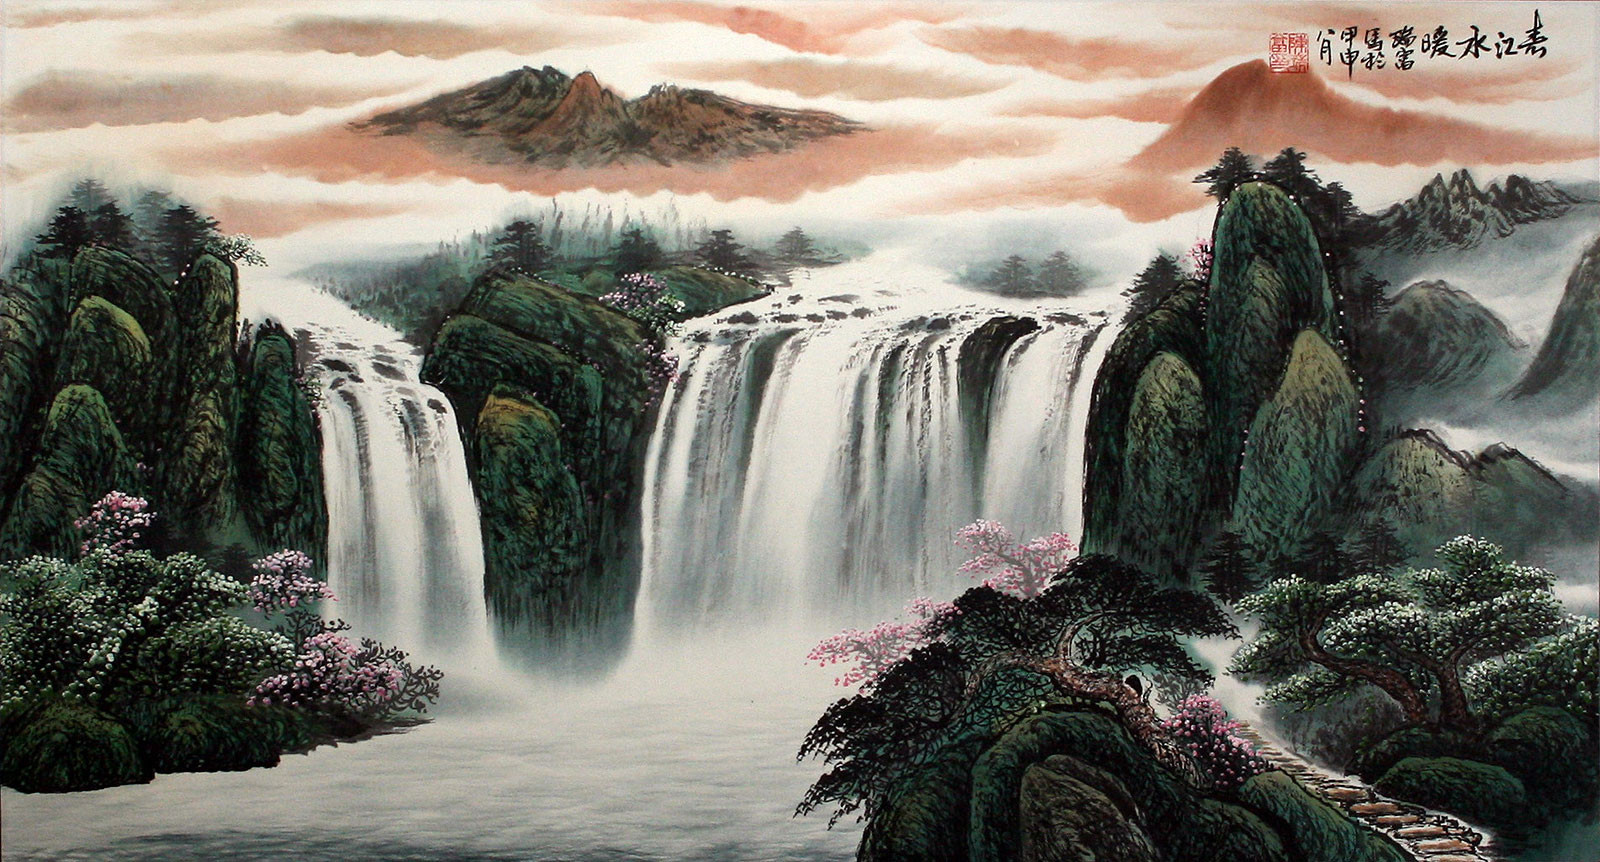 Chinese water fall painting.jpg